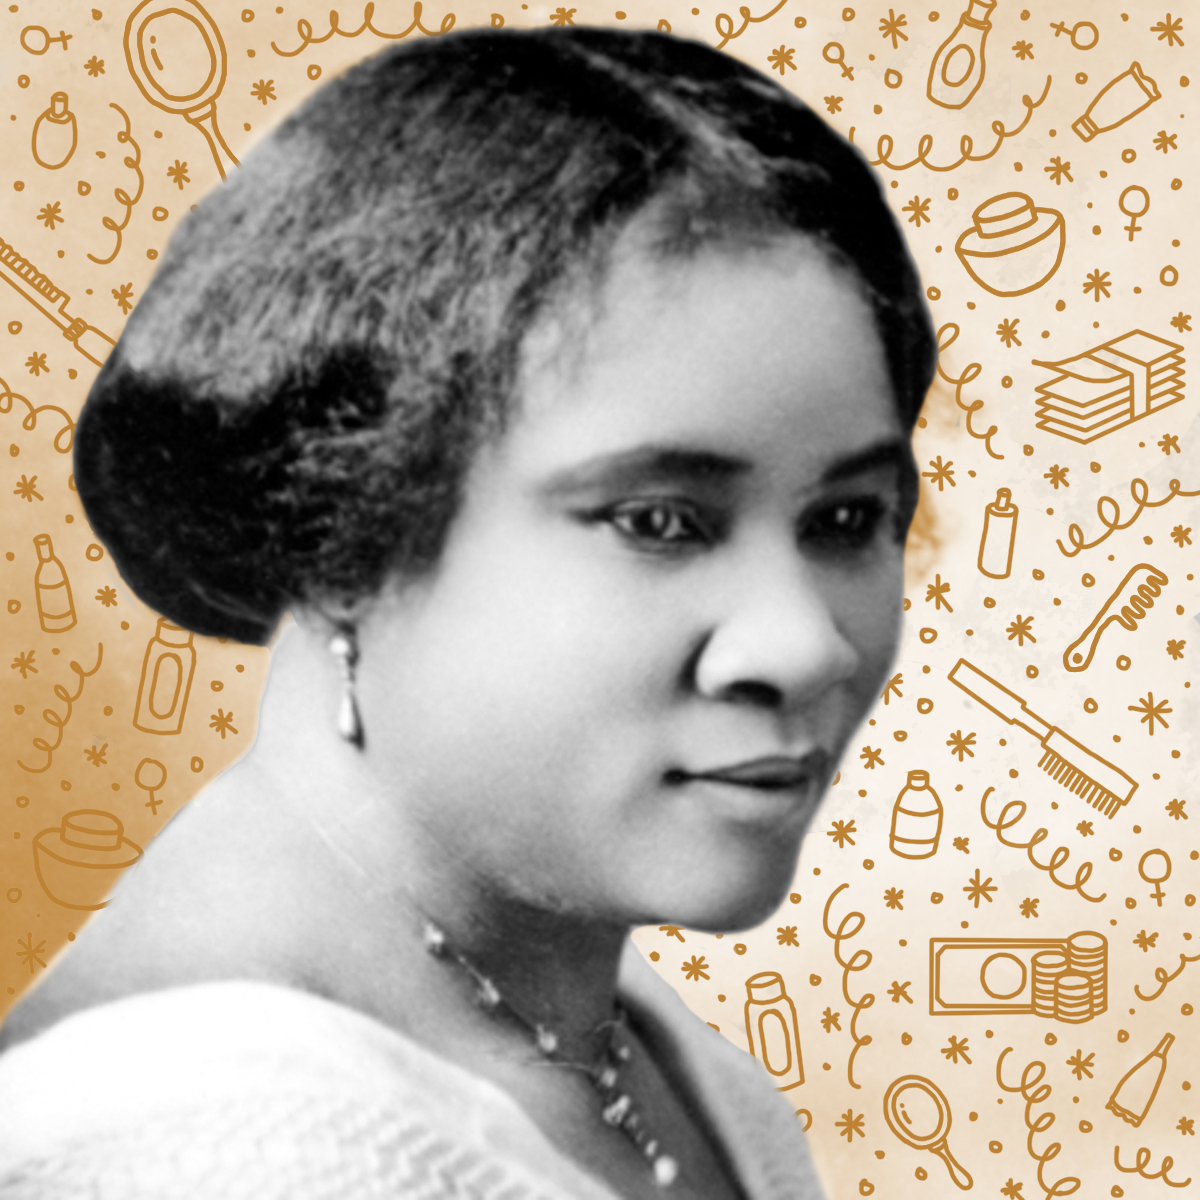 Madame C.J. Walker   When her hair started falling out at nearly 40 years old, Walker began creating at-home remedies,which she later began selling nation-wide. Determined to create opportunities for Black people who she saw working as maids and sharecroppers, Walker began recruiting Black men and women across America to join her growing beauty empire as sales agents.The daughter of former slaves, Walker went on to become the first female self-made millionaire in America, and built a mansion in the same neighborhood as John D. Rockefeller.